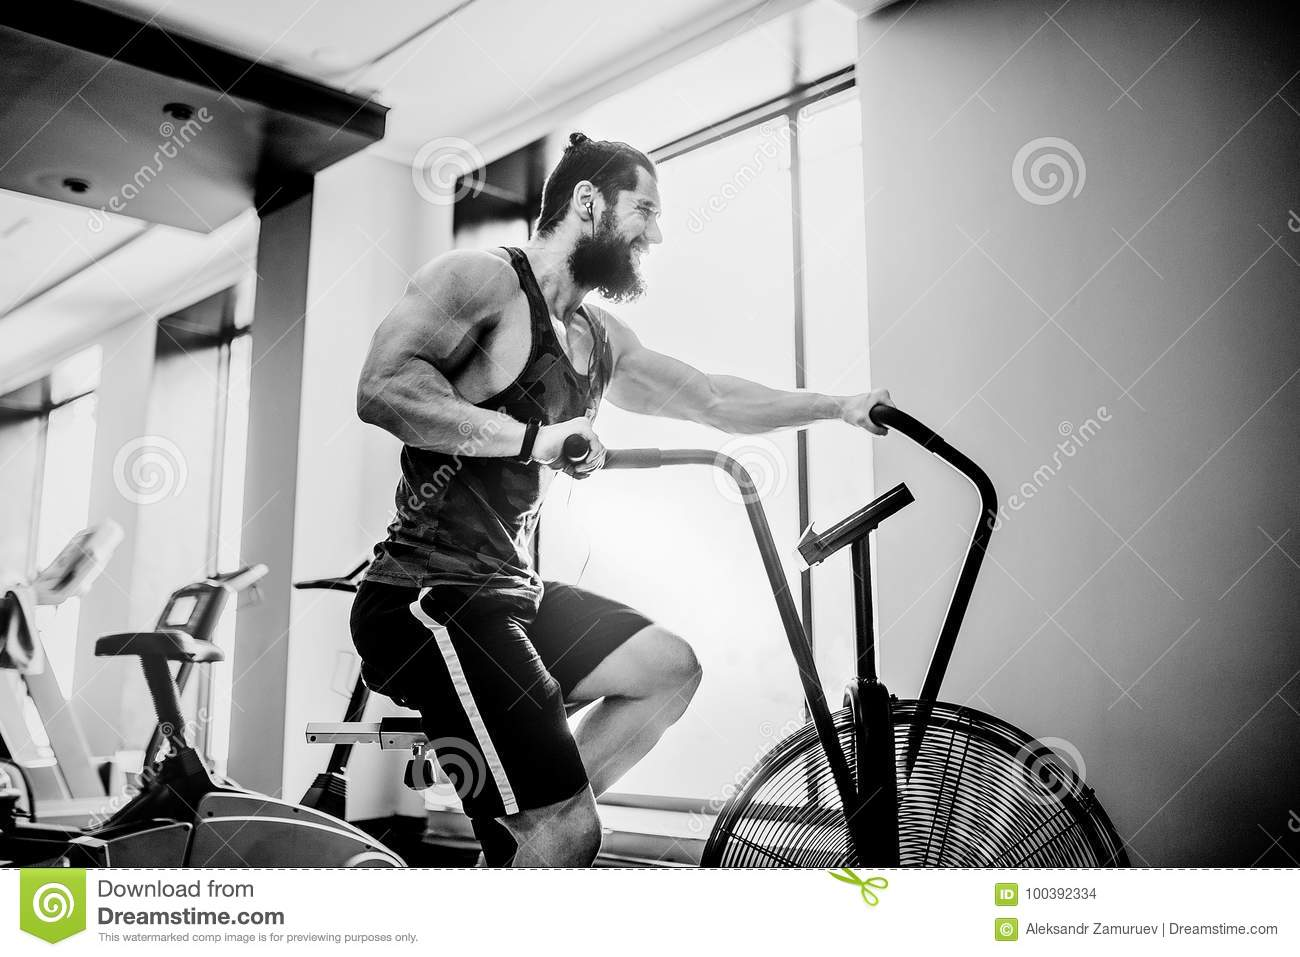 Man Using Exercise Bike At The Gym Fitness Male Air For Cardio Workout Functional Training